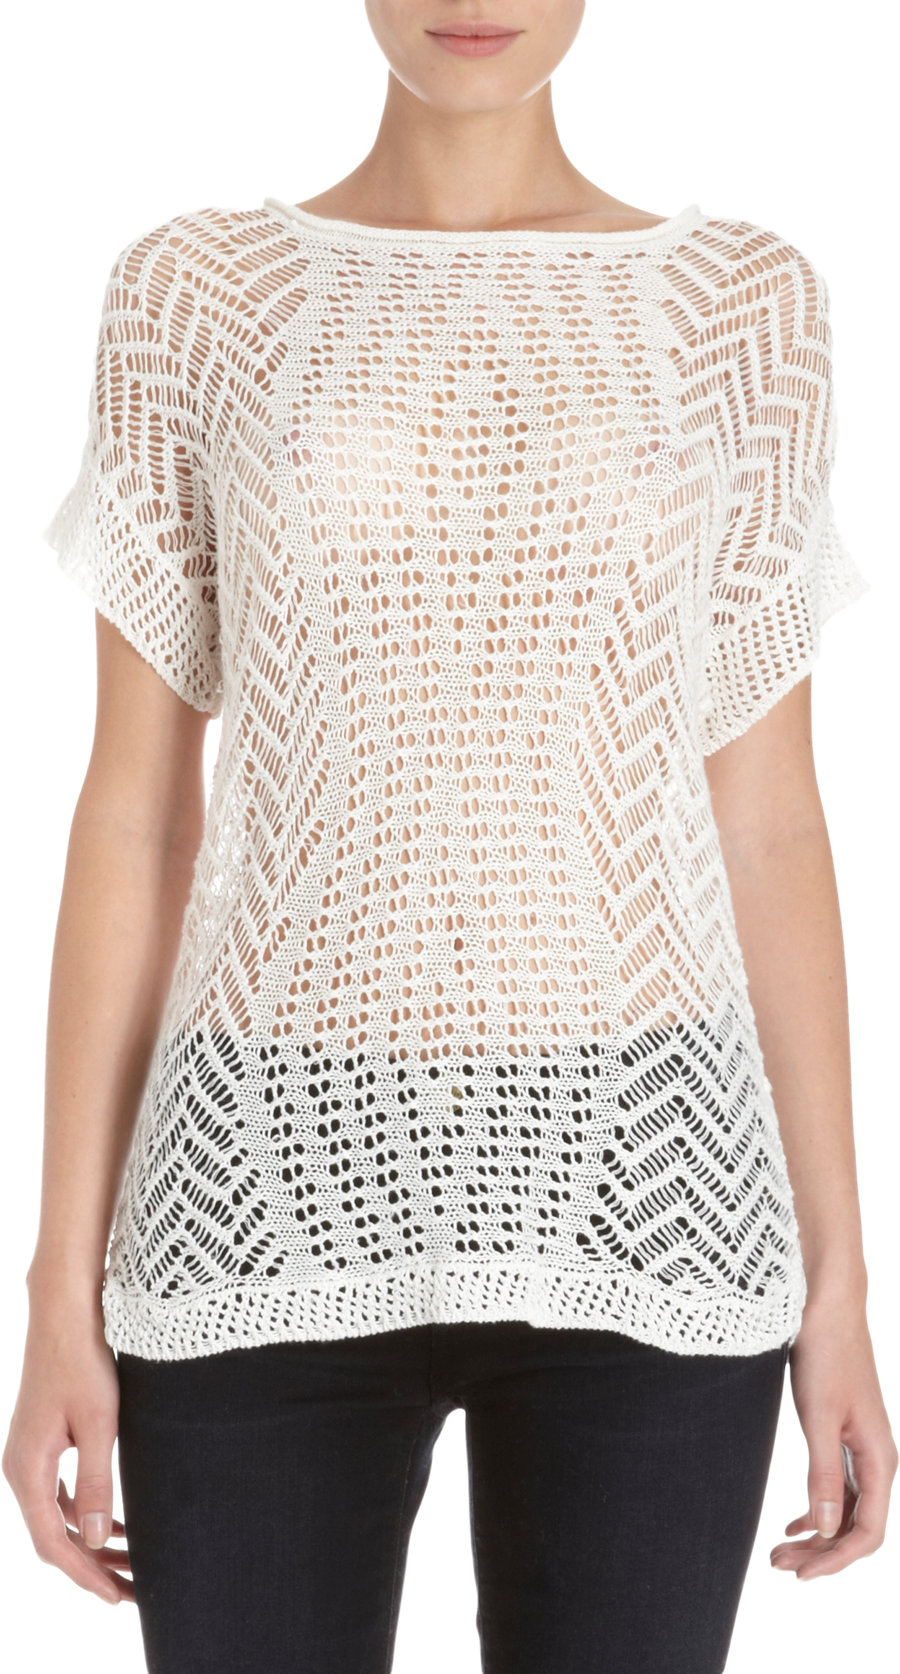 Free Crochet Pattern Short Sleeve Sweater : Thakoon Open Crochet Knit Short Sleeve Sweater in White Lyst